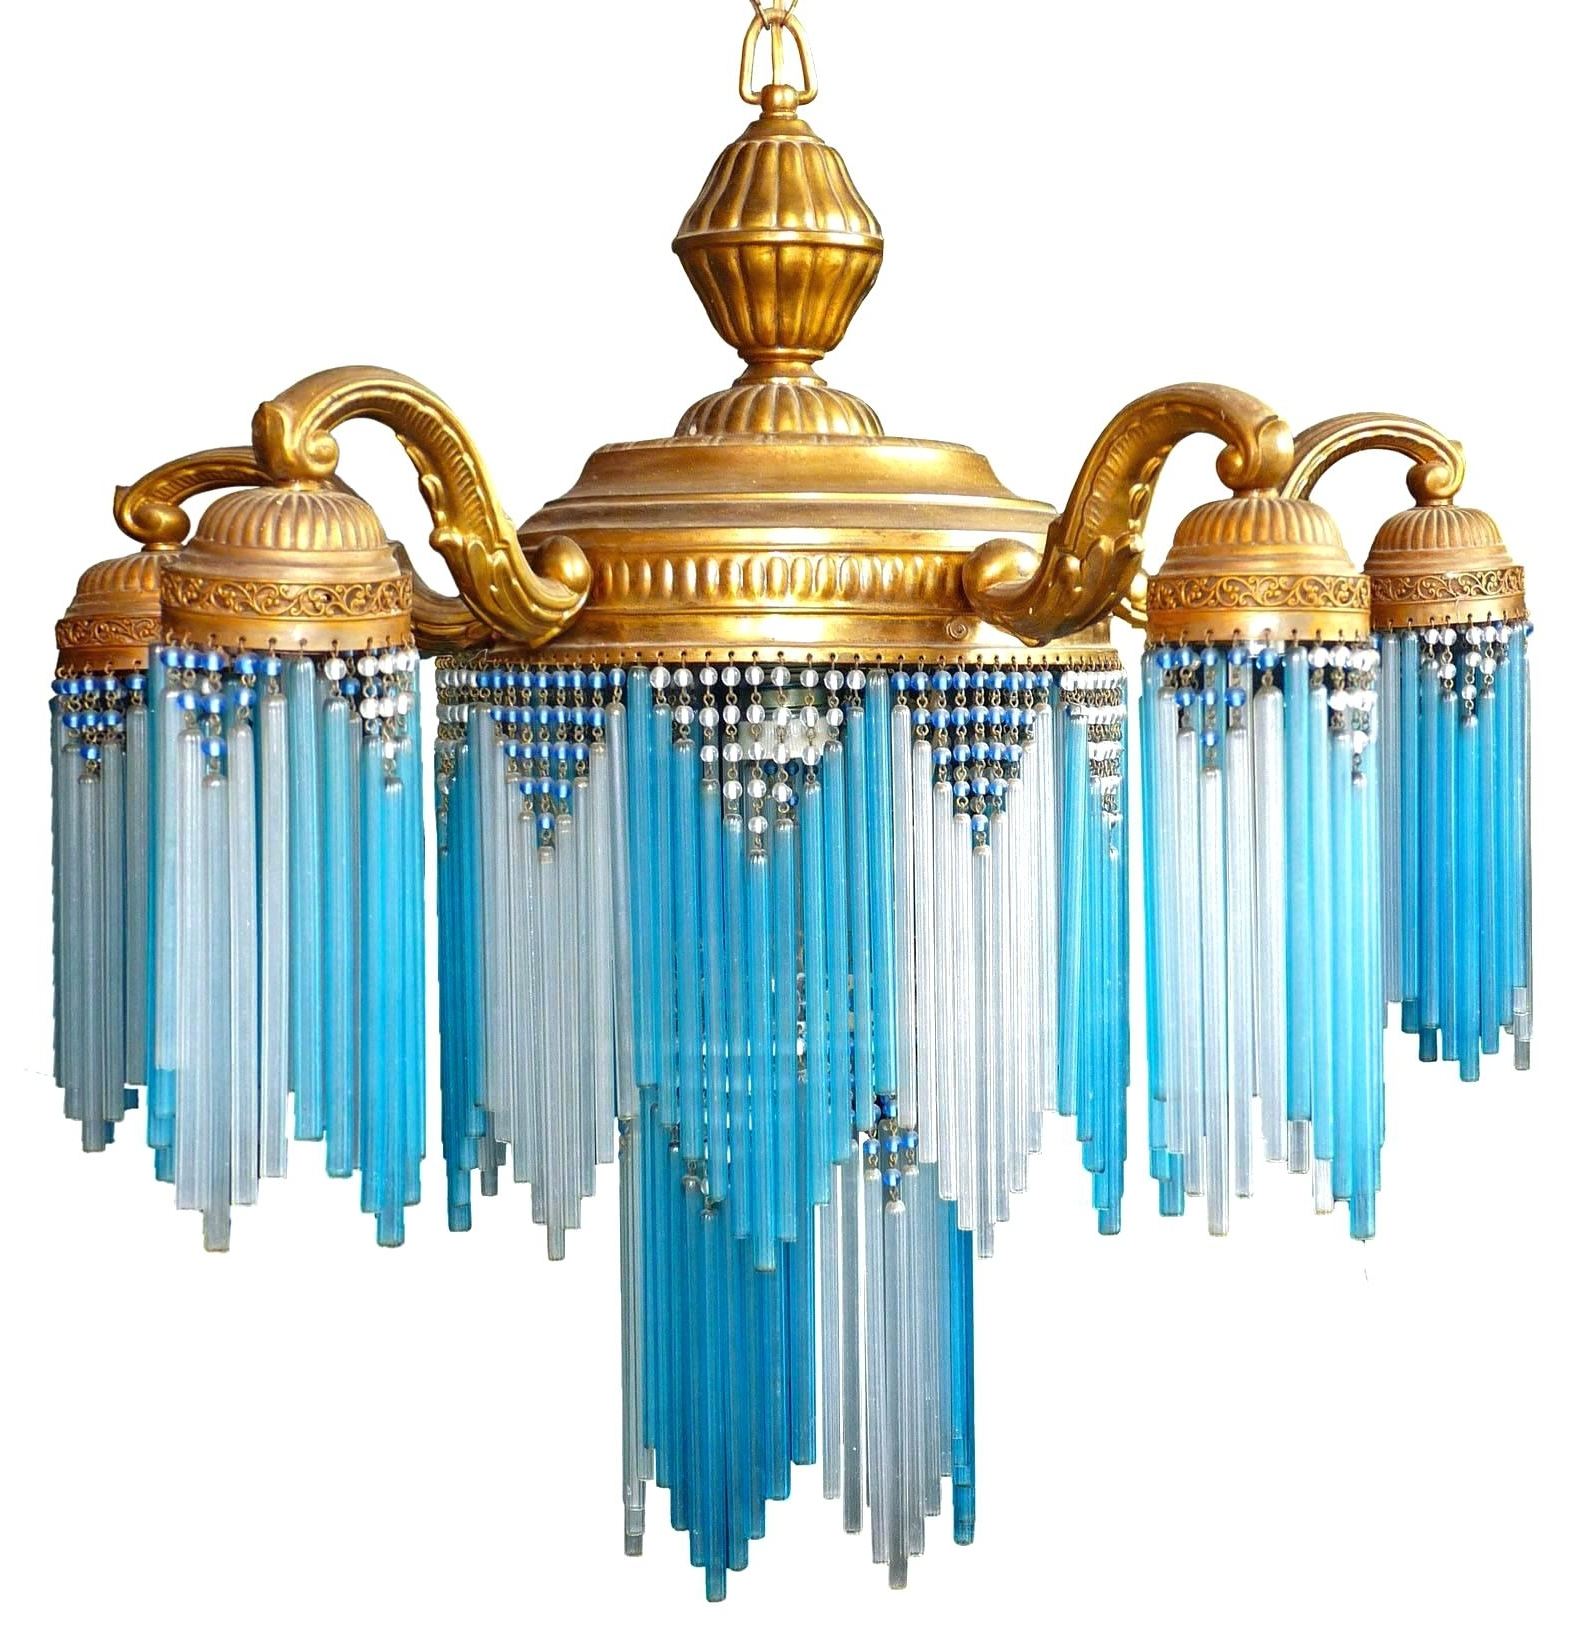 Most Recent Diy Turquoise Beaded Chandeliers Pertaining To Lighting : Regina Andrew Turquoise Chandelier Light Wood Diy Small (View 13 of 15)